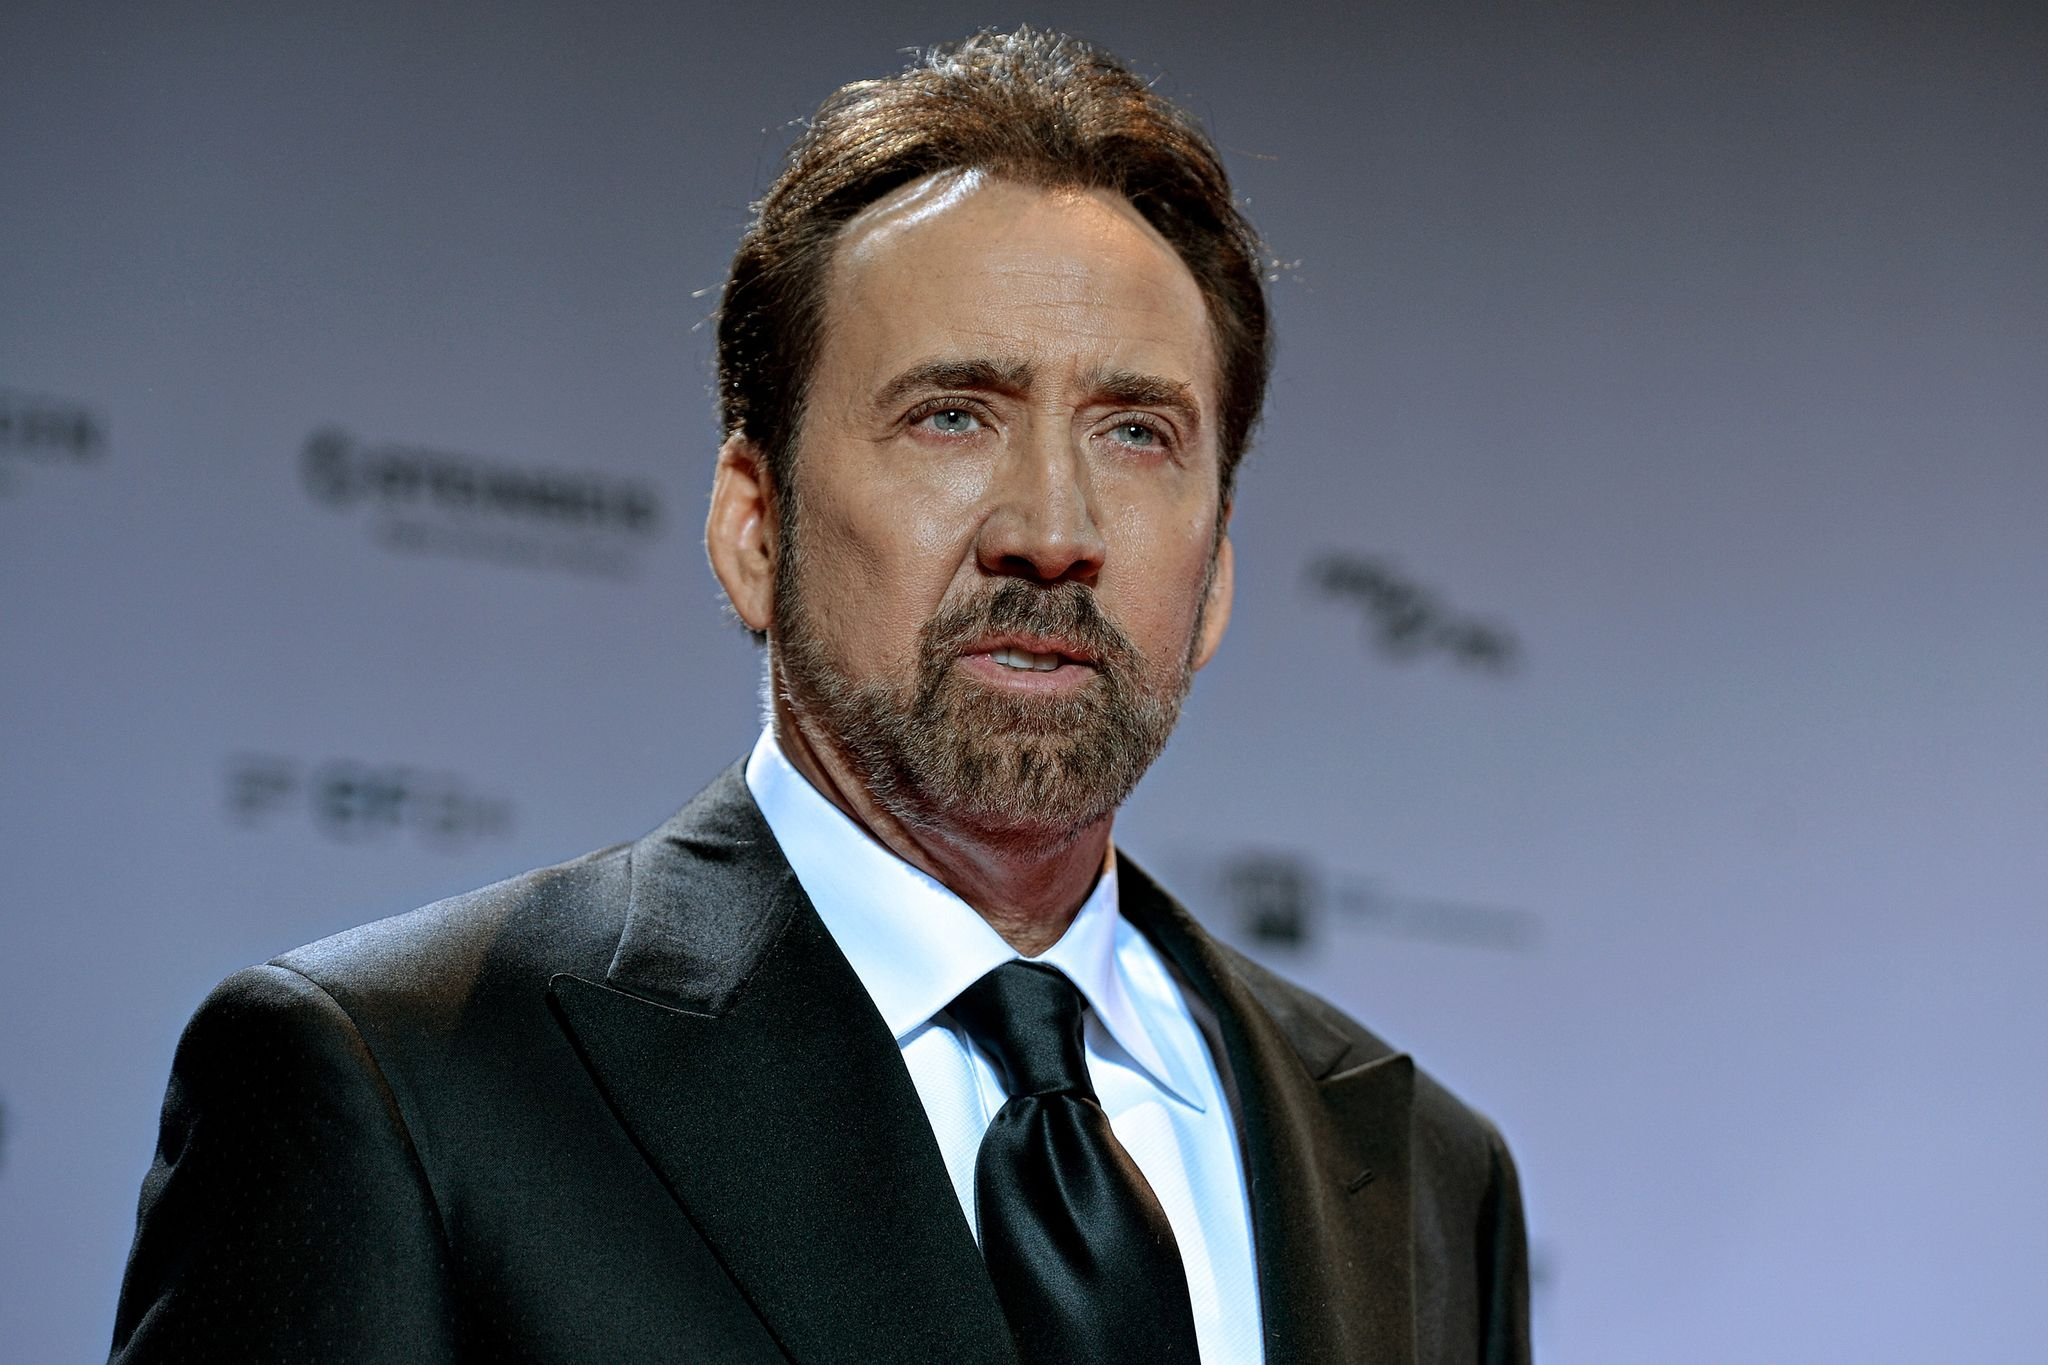 Nicolas Cage attends the German Sustainability Award 2016 at Maritim Hotel on November 25, 2016 in Duesseldorf, Germany | Photo: Getty Images